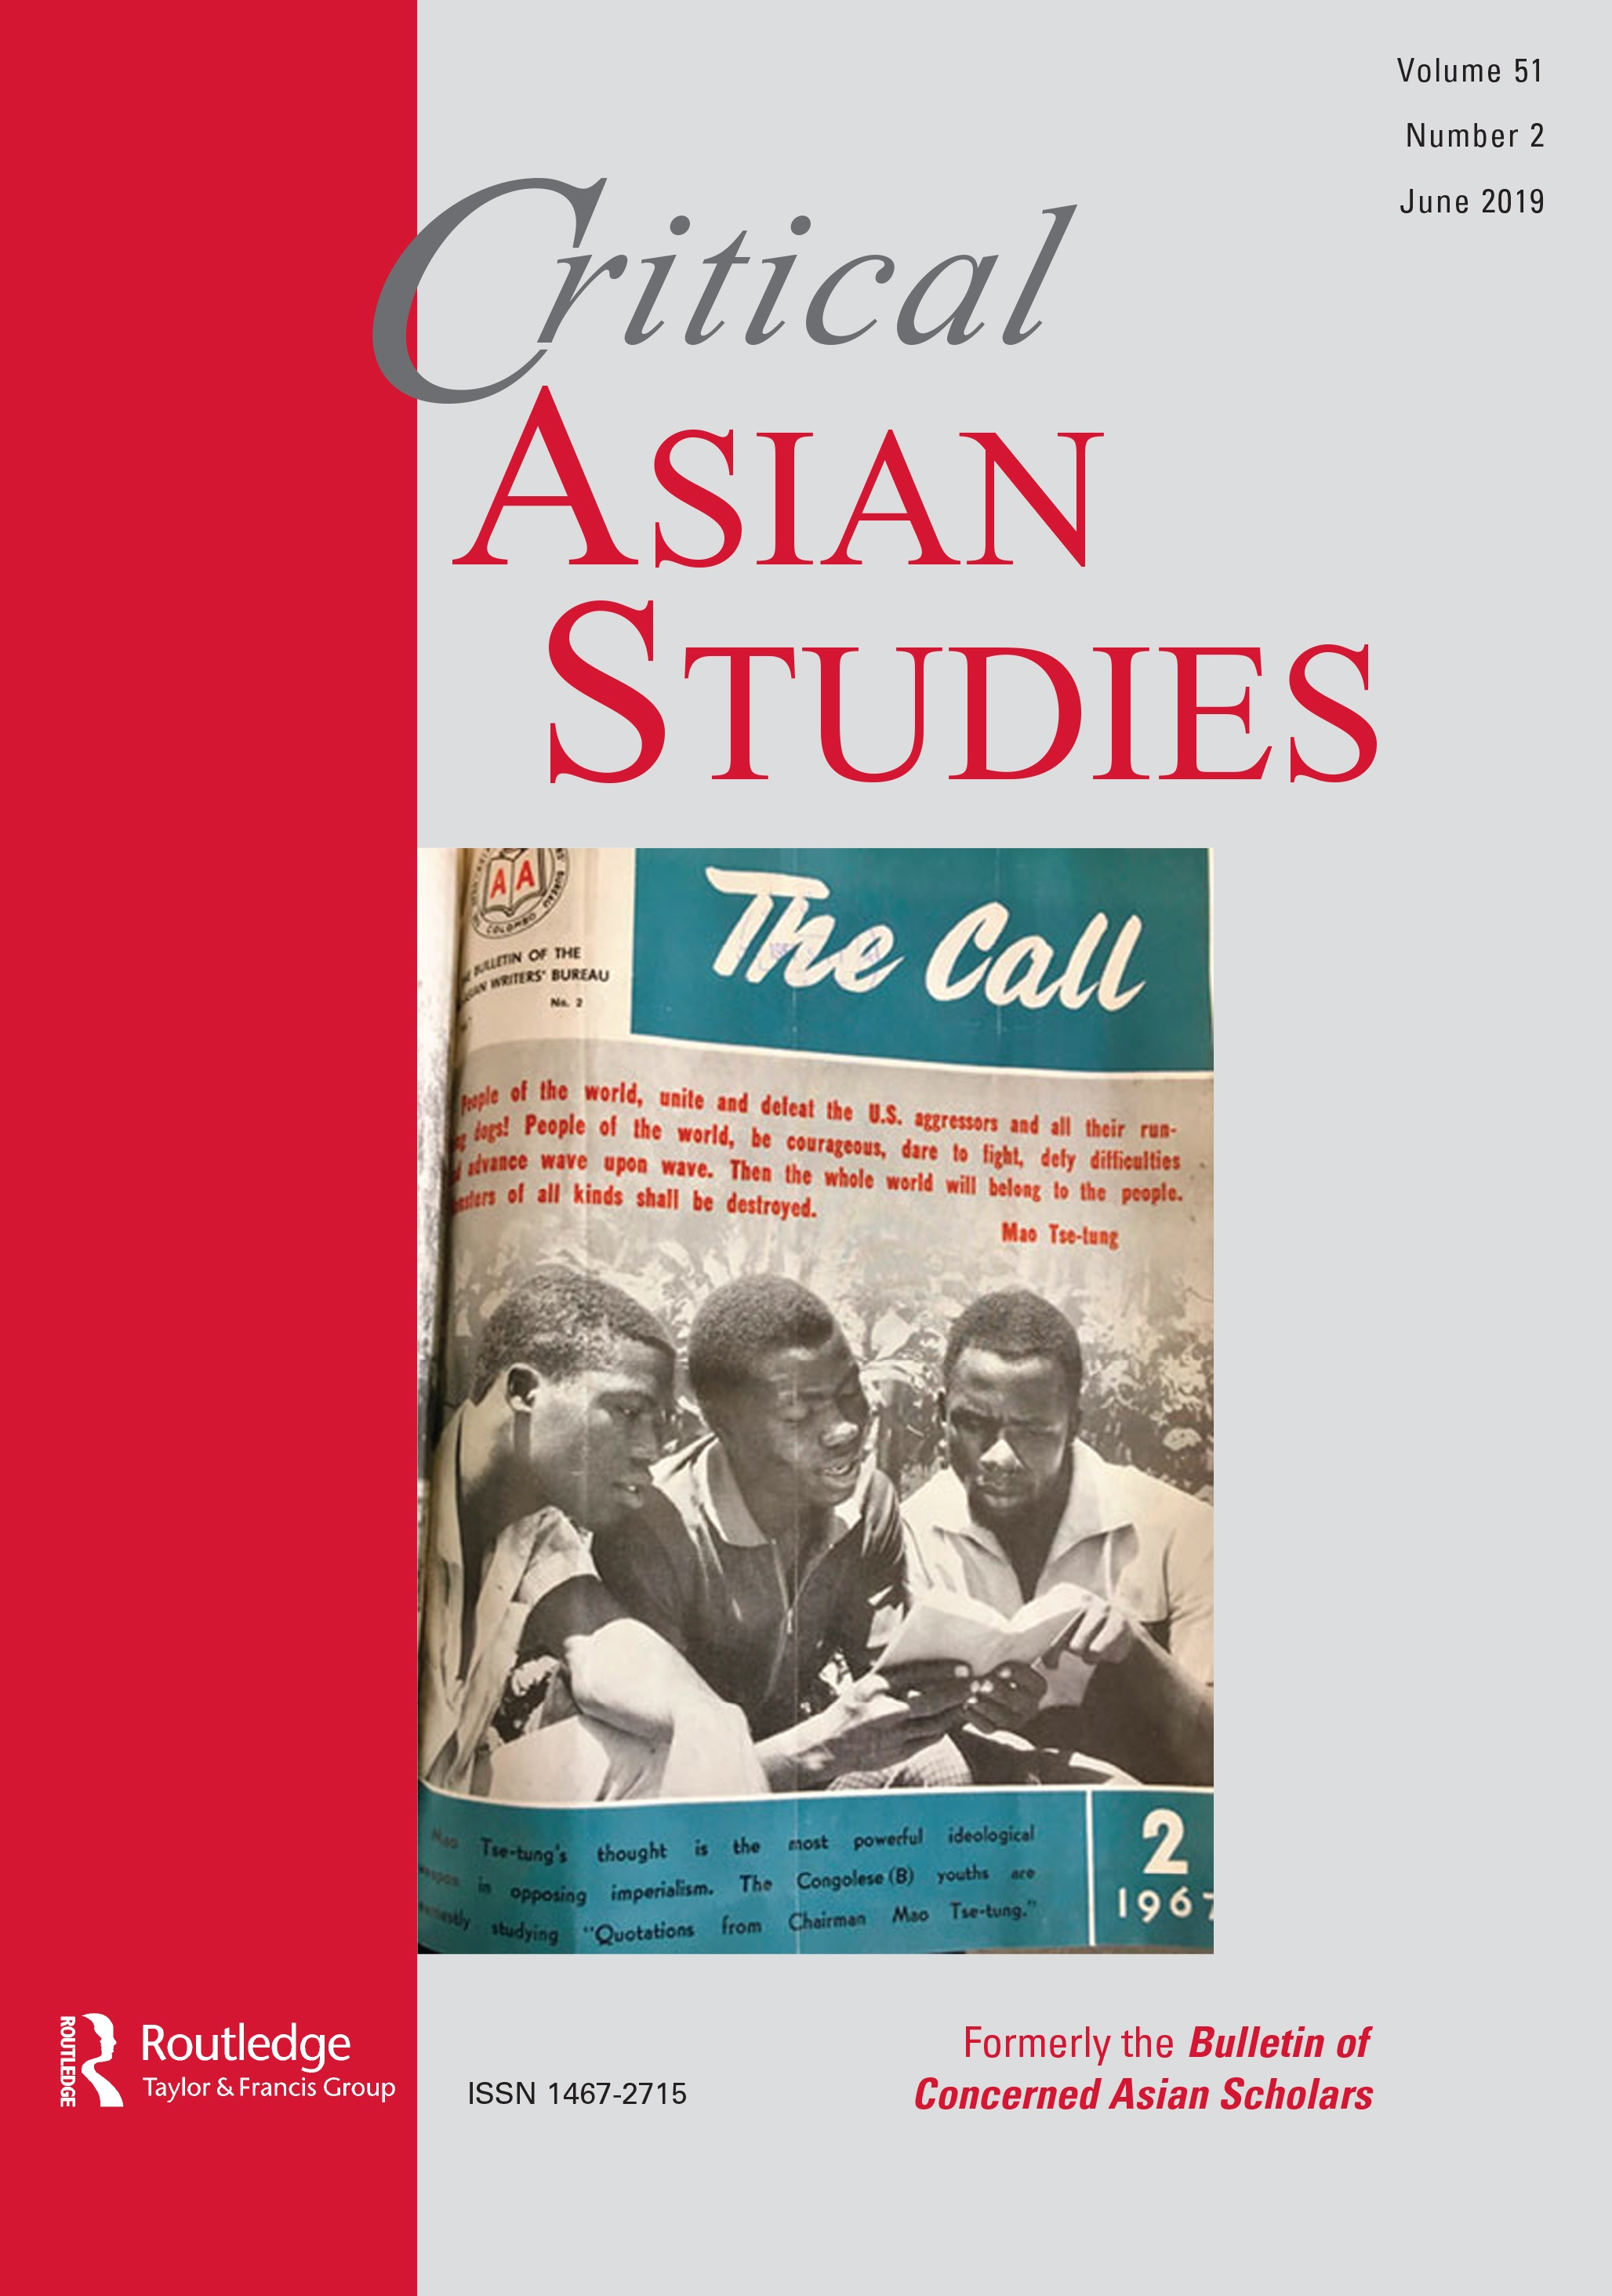 - The Call was the flagship journal of the Afro-Asian Writers' Bureau, which was established in 1958 in the wake of the first Asia-Africa Conference held at Bandung, Indonesia, in 1955. This 1967 cover features young men from Congo-Brazzaville reading Mao Zedong's Little Red Book. Source: The Call 2 (1967).